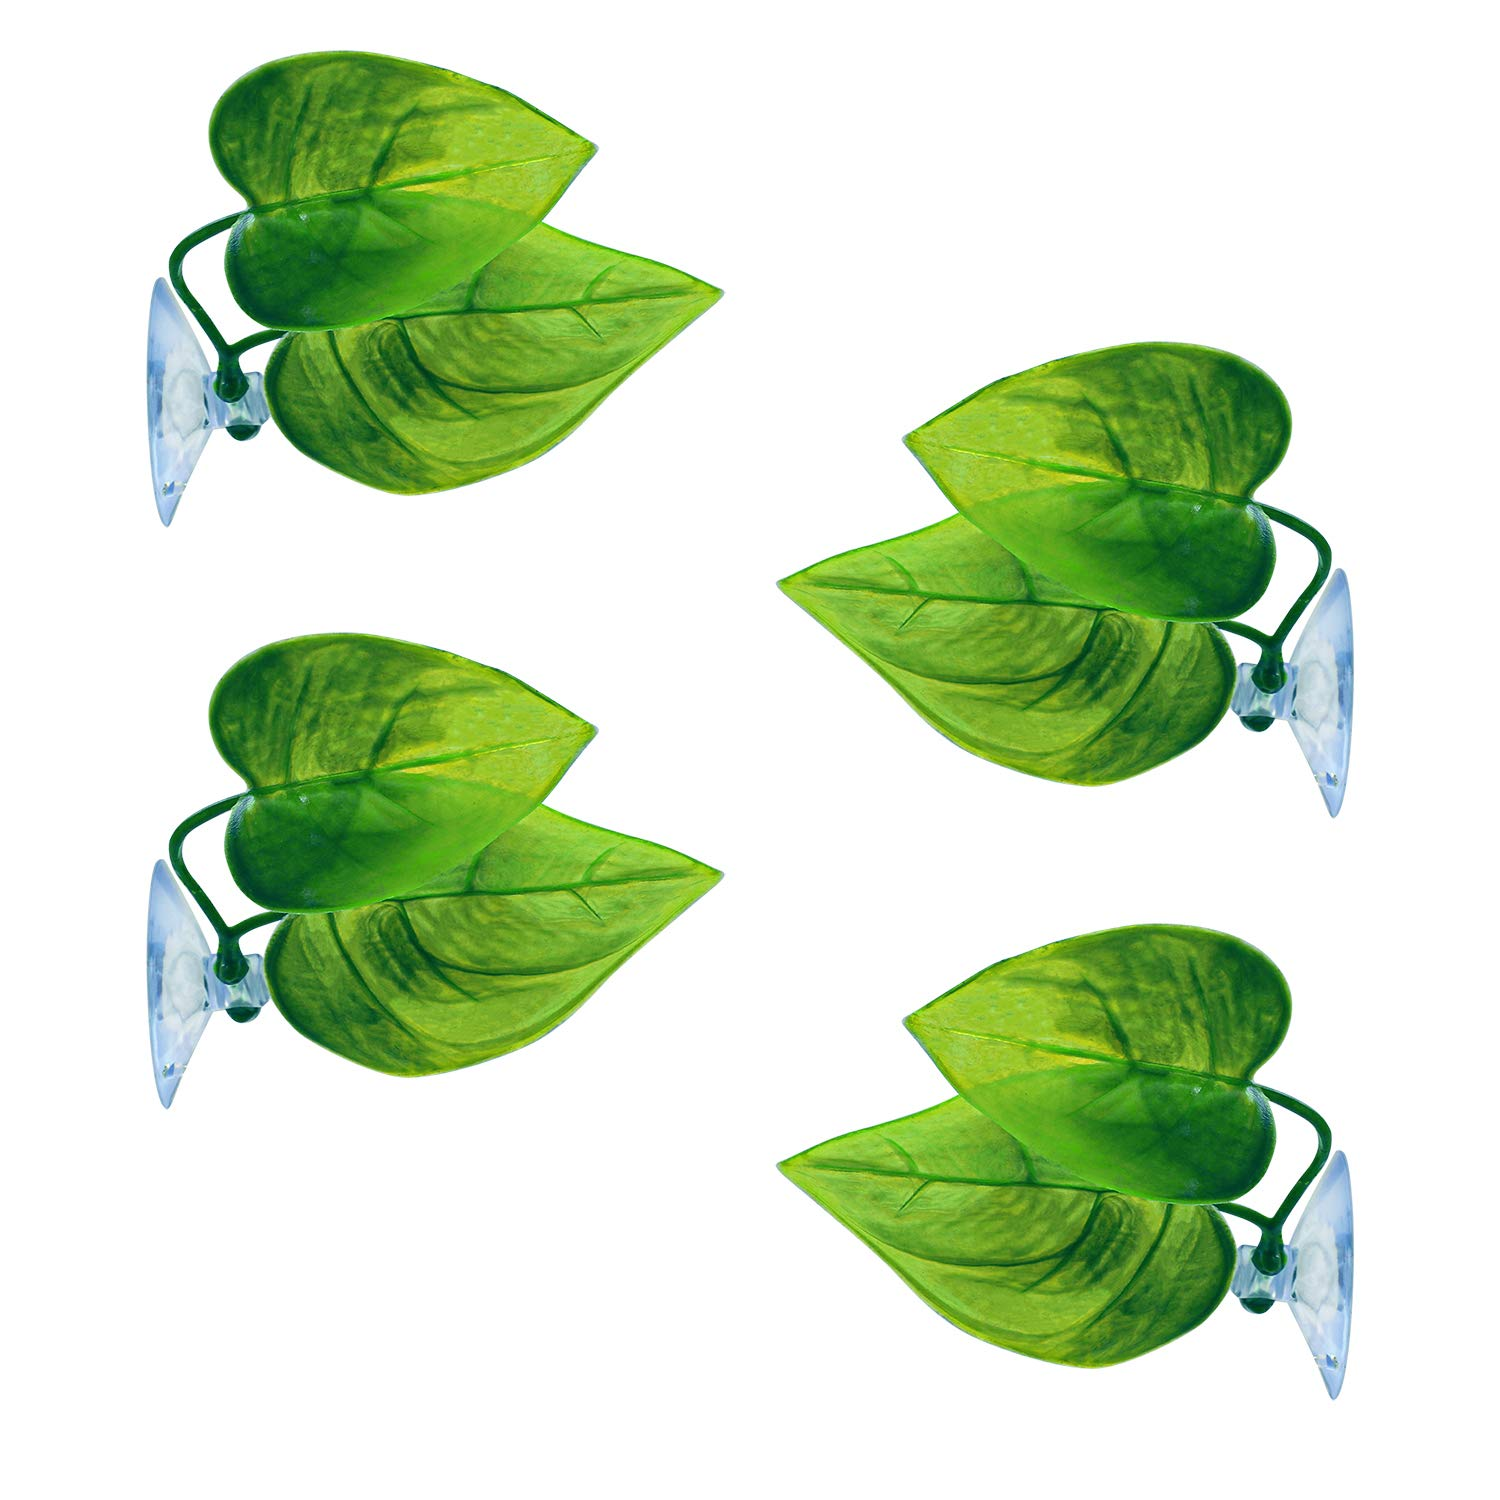 URATOT 4 Pack Betta Fish Leaf Pad Simulating The Natural Habitat for Betta Spawning Grounds Breeding Resting Bed